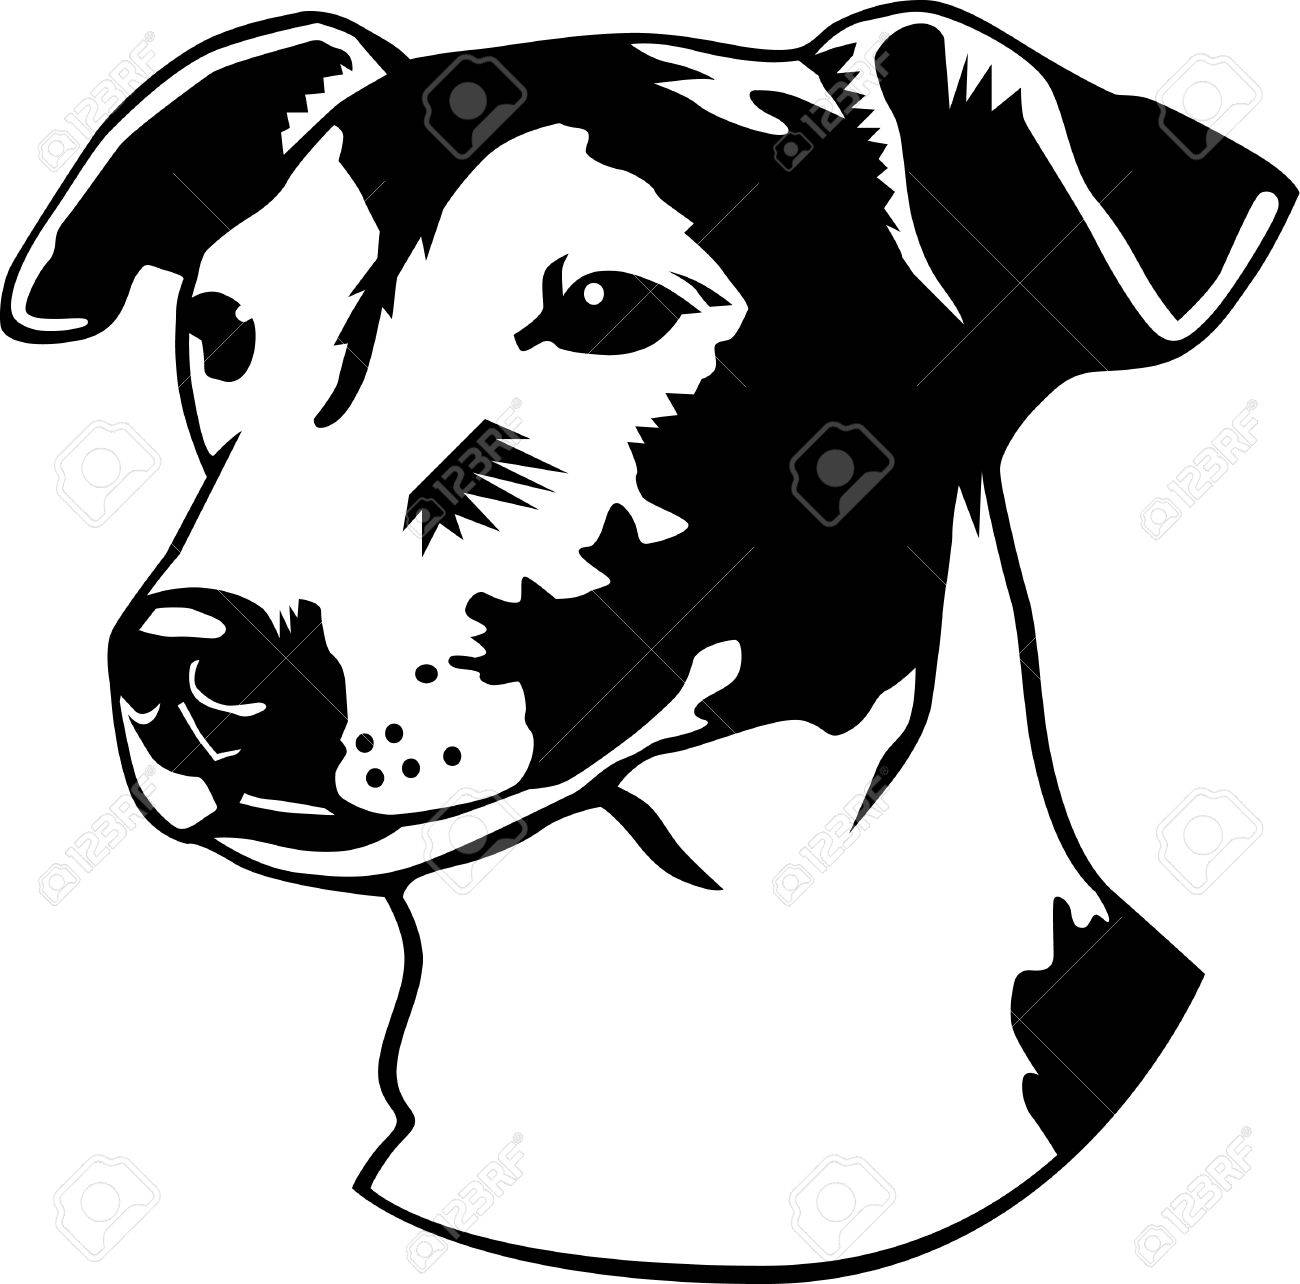 1300x1284 A Jack Russell Terrier Illustration. Royalty Free Cliparts